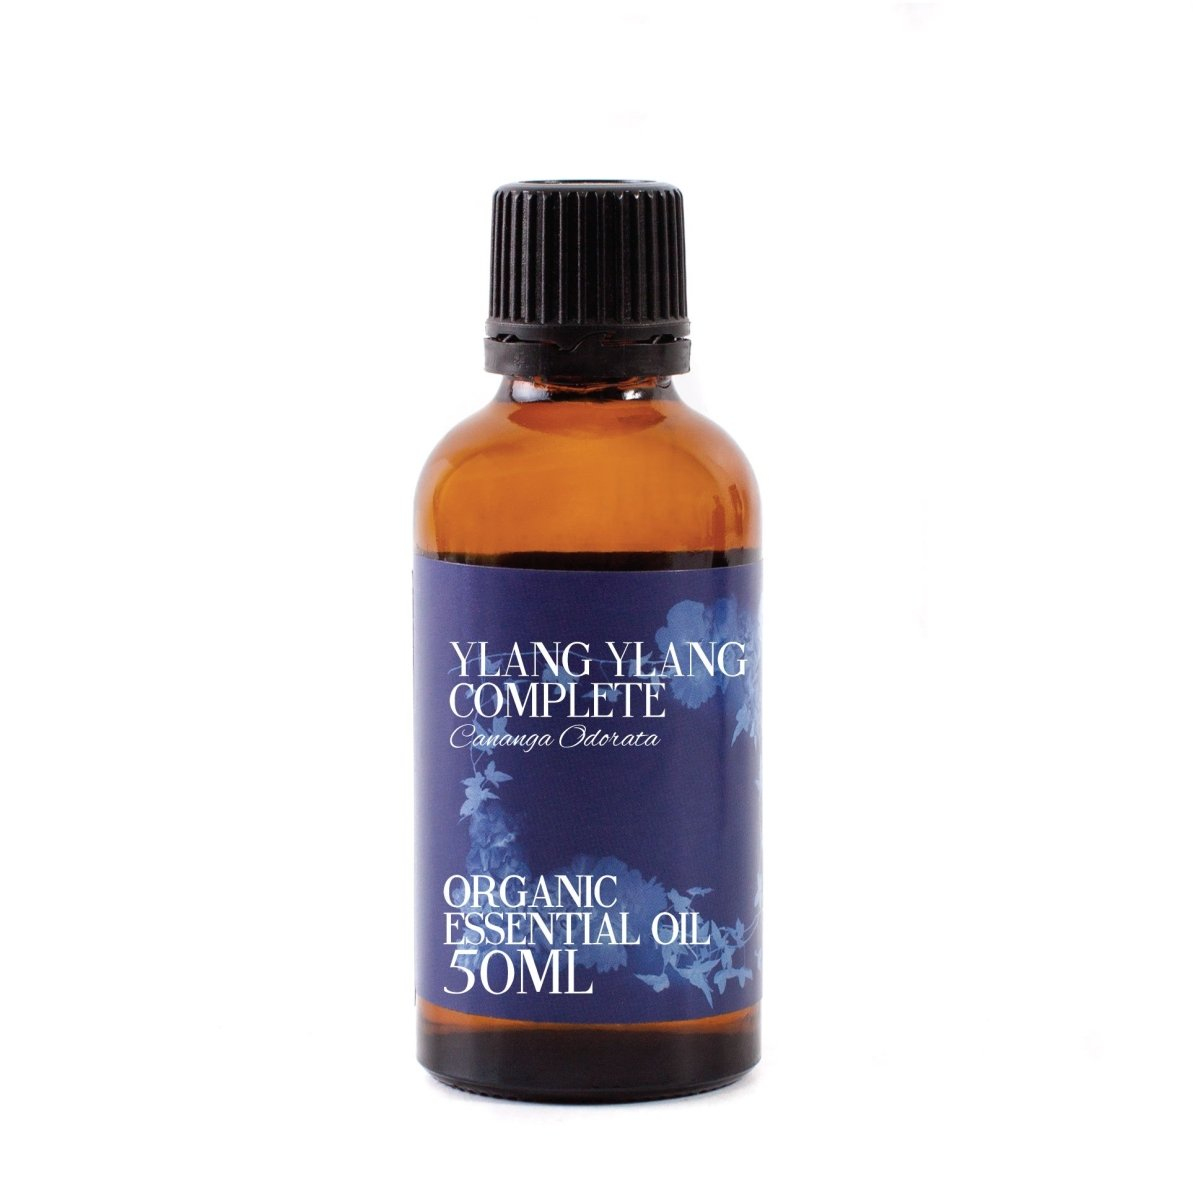 Ylang Ylang Complete Organic Essential Oil - Mystic Moments UK